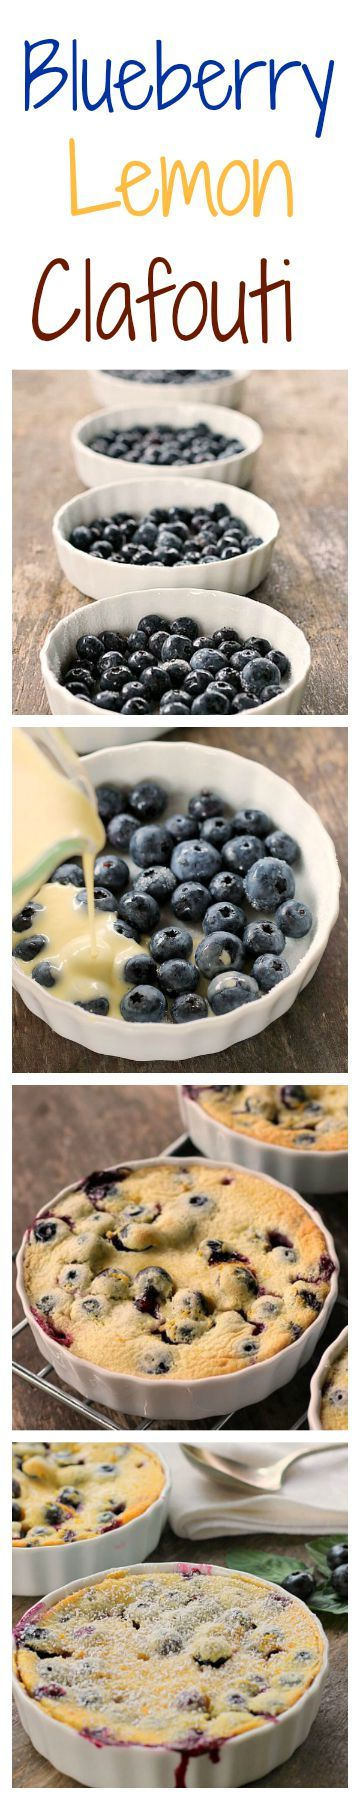 Blueberry Lemon Clafoutis The flavors of blueberry and lemon pop in your mouth in this very easy delicious French dessert. Made with cream cheese in the batter, the texture is lovely!